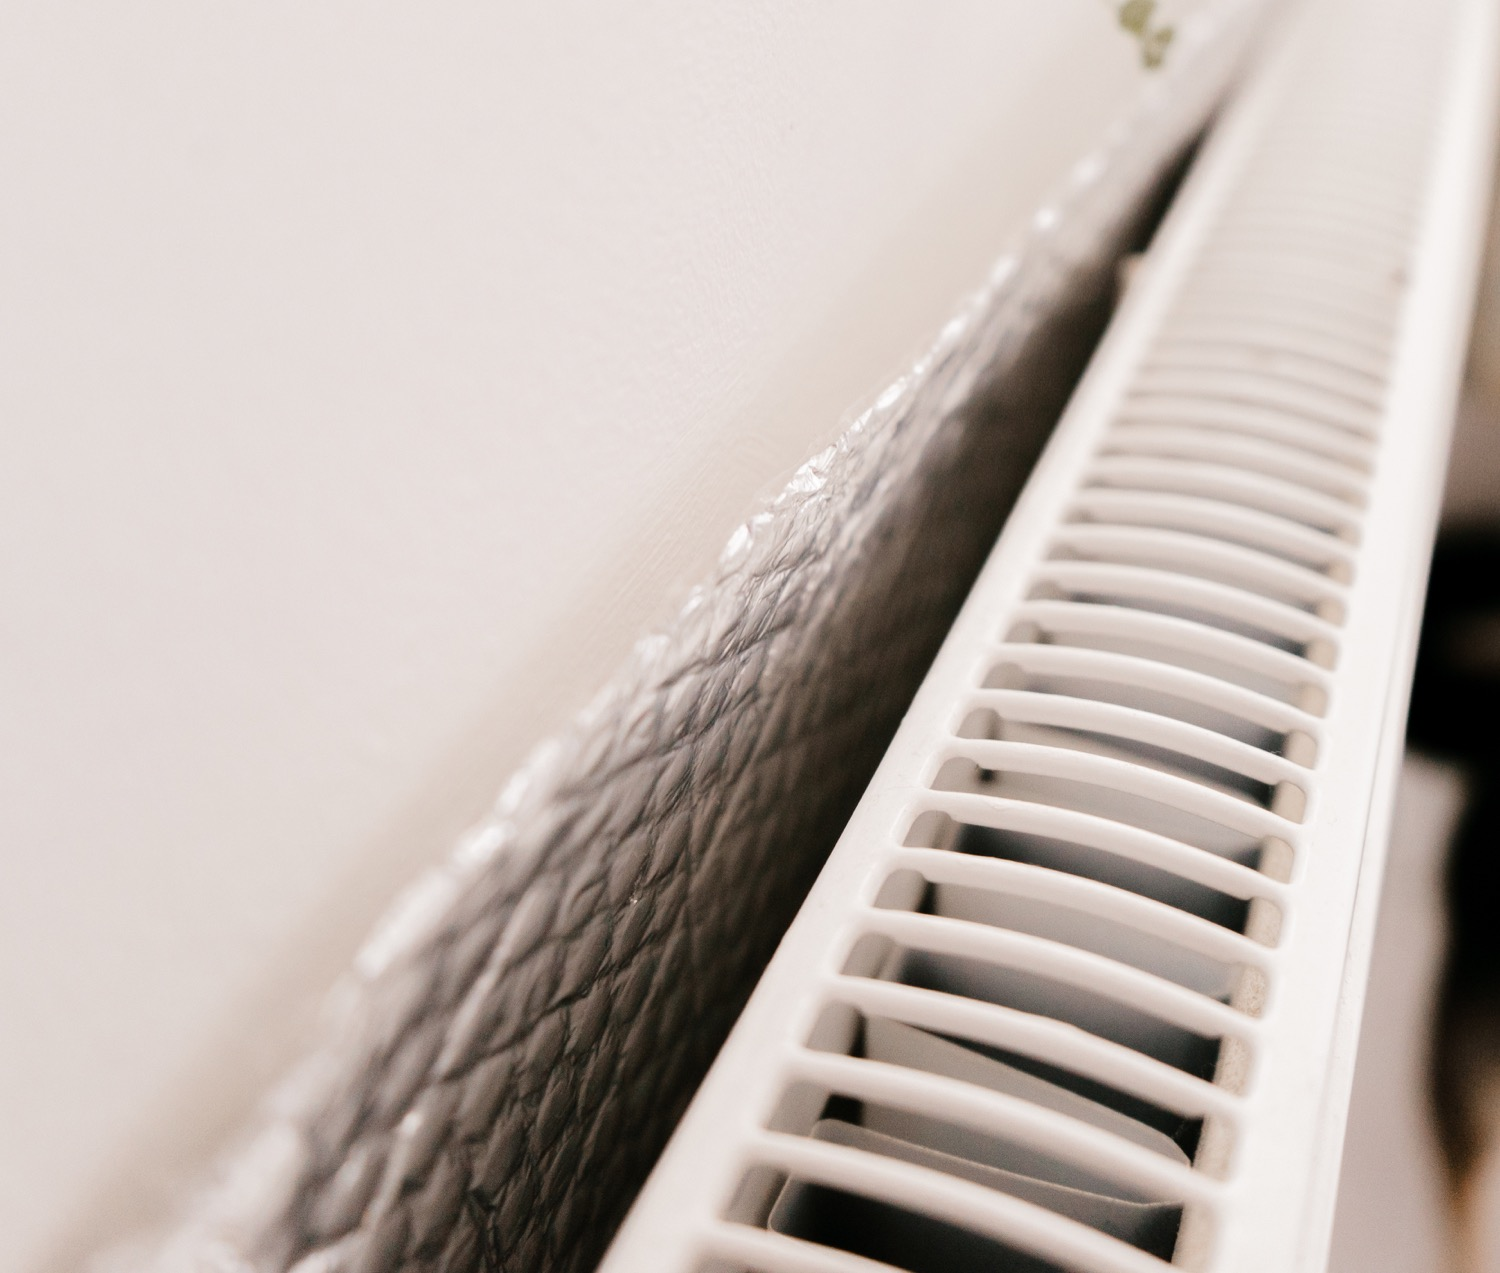 What is the most efficient way to heat a home? 1